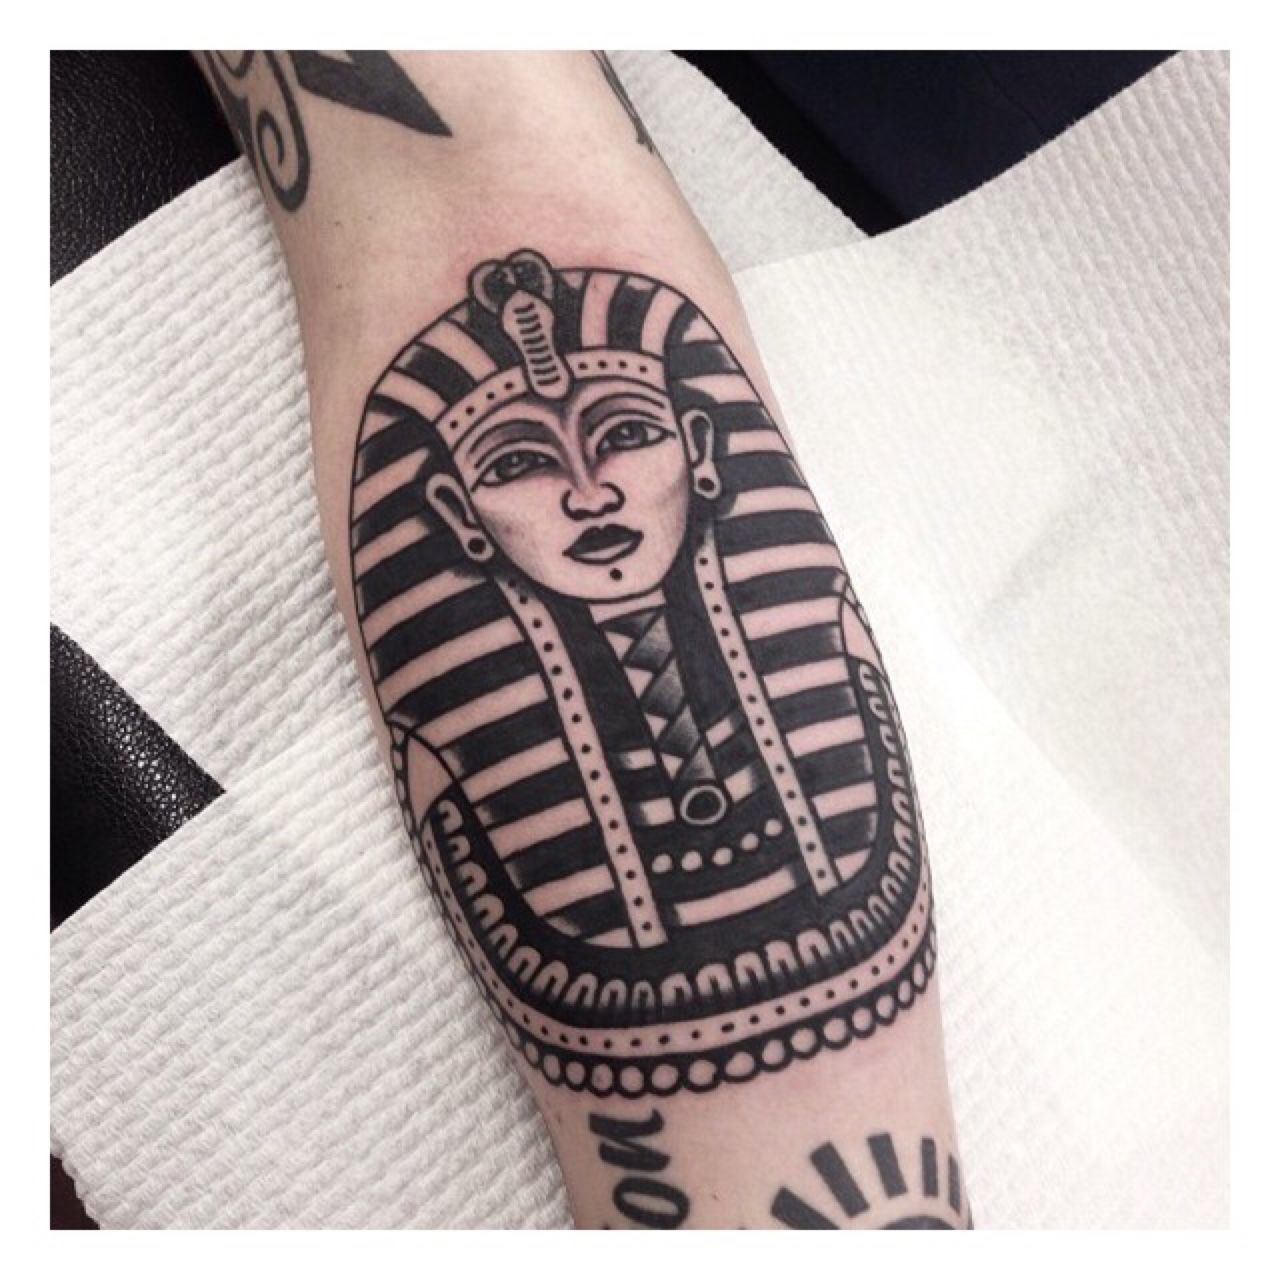 tutankhamun tattoo by harry morgan traditionaltattoo tattooing pinterest harry morgan. Black Bedroom Furniture Sets. Home Design Ideas